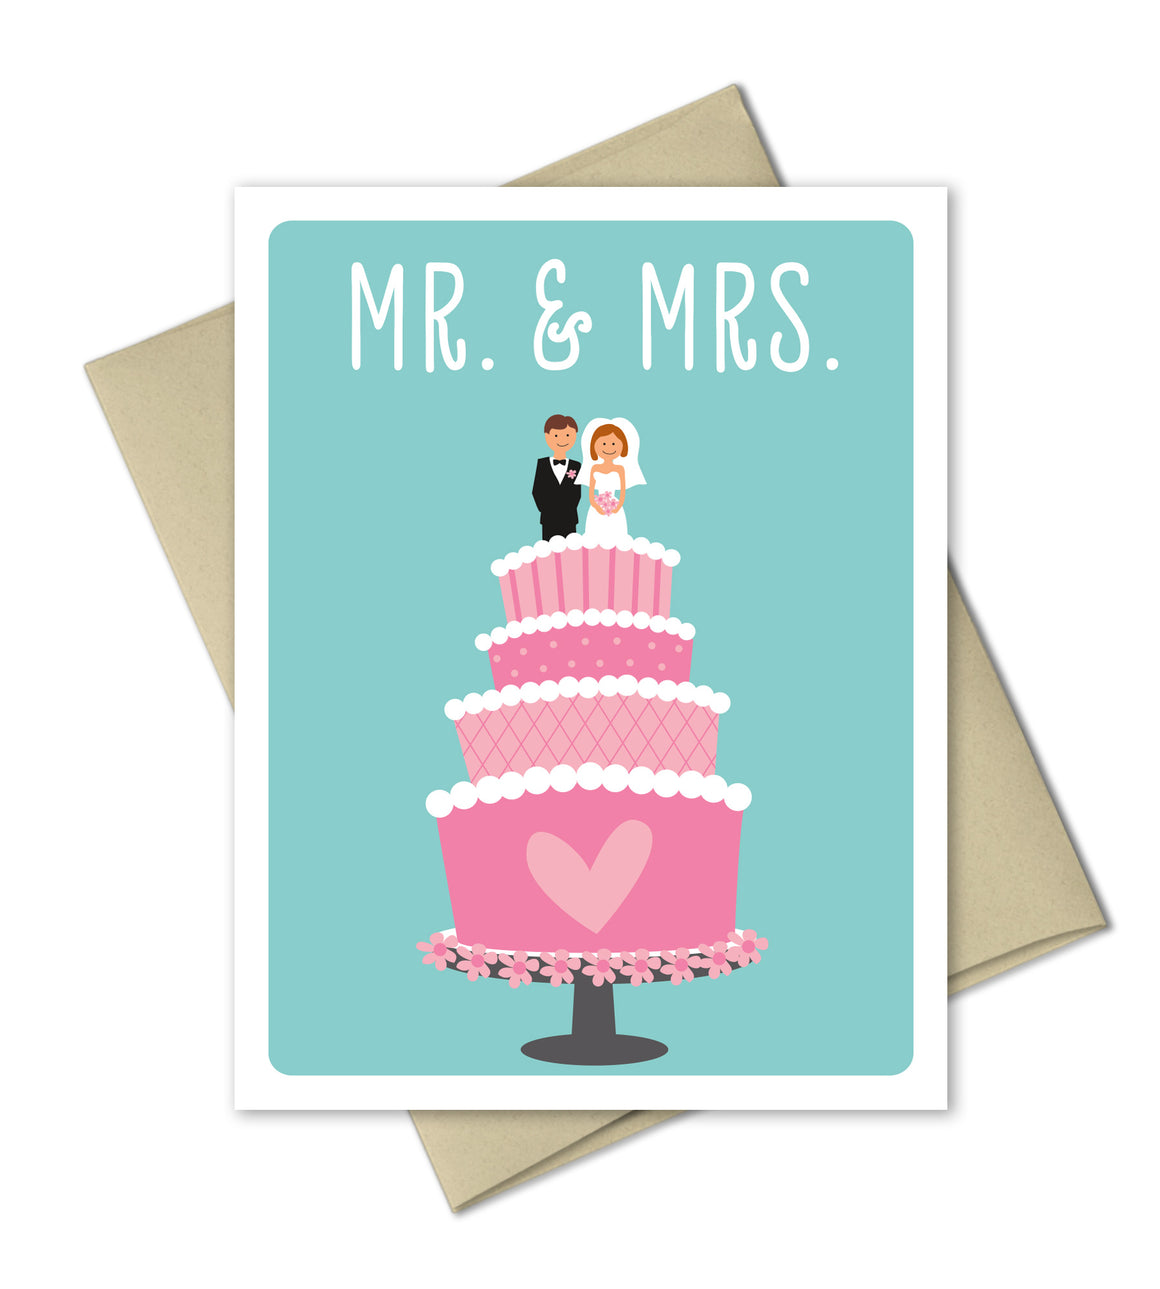 Wedding Congrats Card - Mr and Mrs - The Imagination Spot - 1